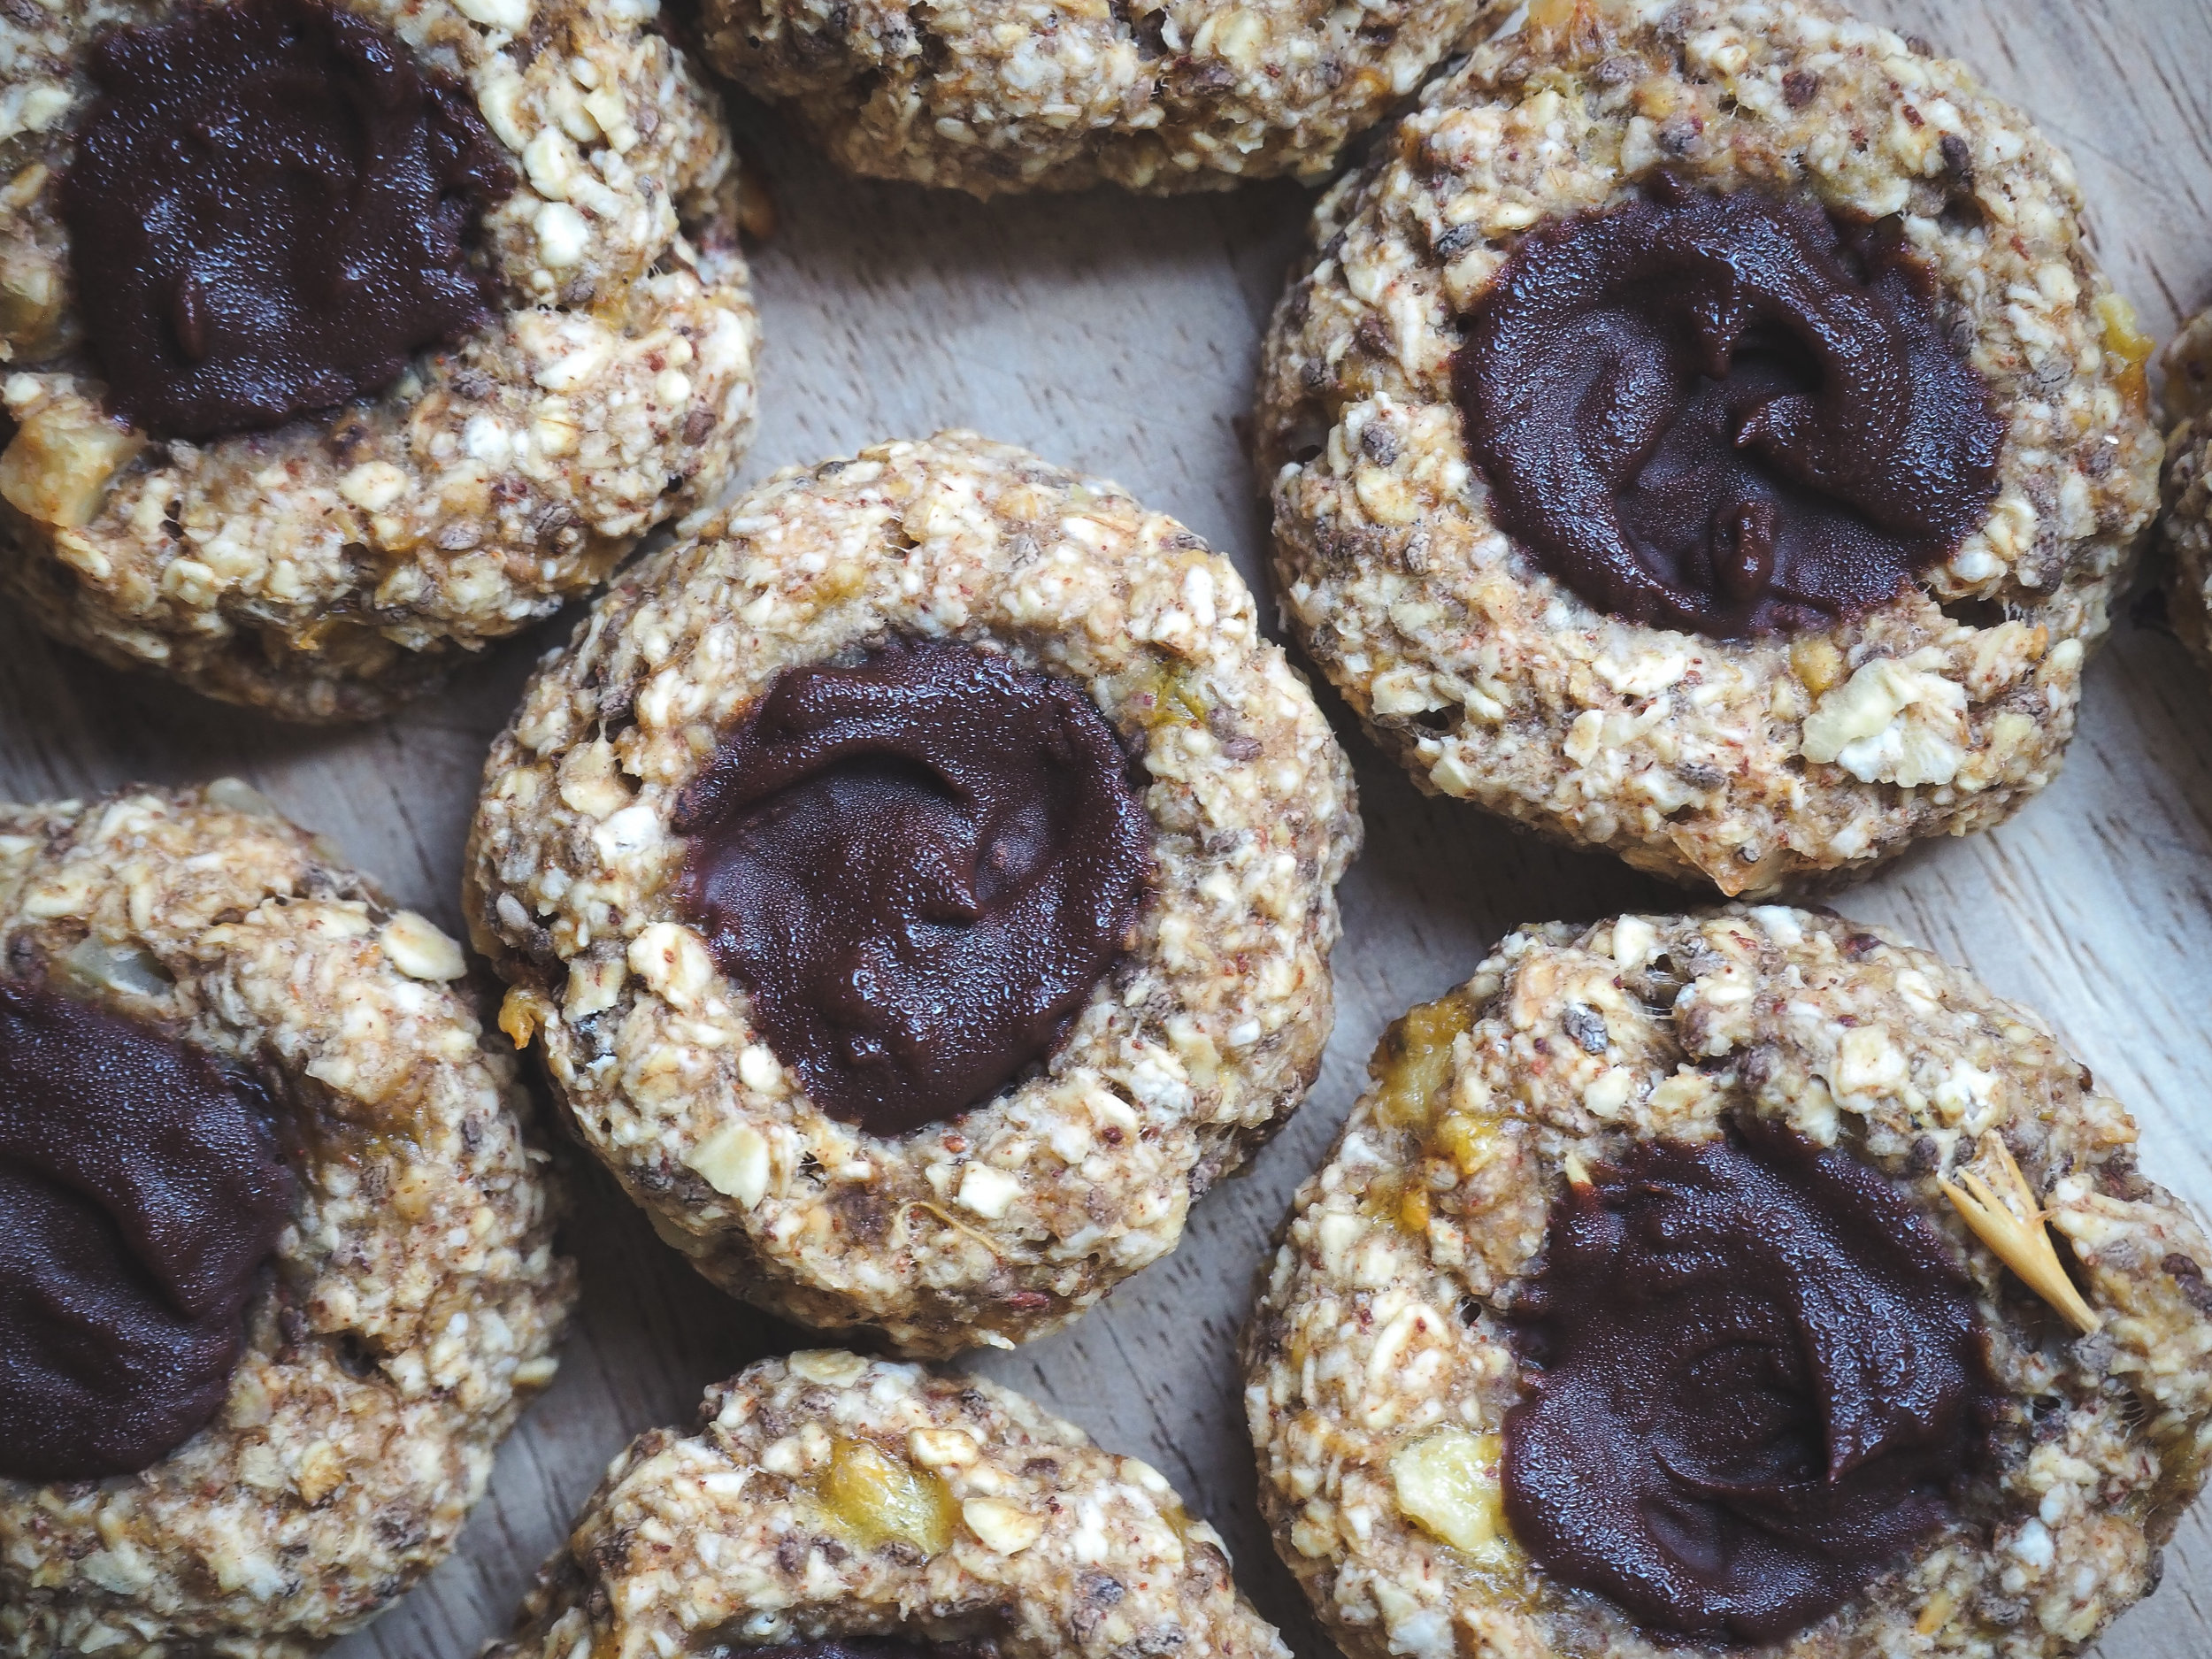 Banana Chocolate Thumbprint Cookies | Healthy Plant-Based Vegan Dessert, Oil-Free, Refined Sugar-Free